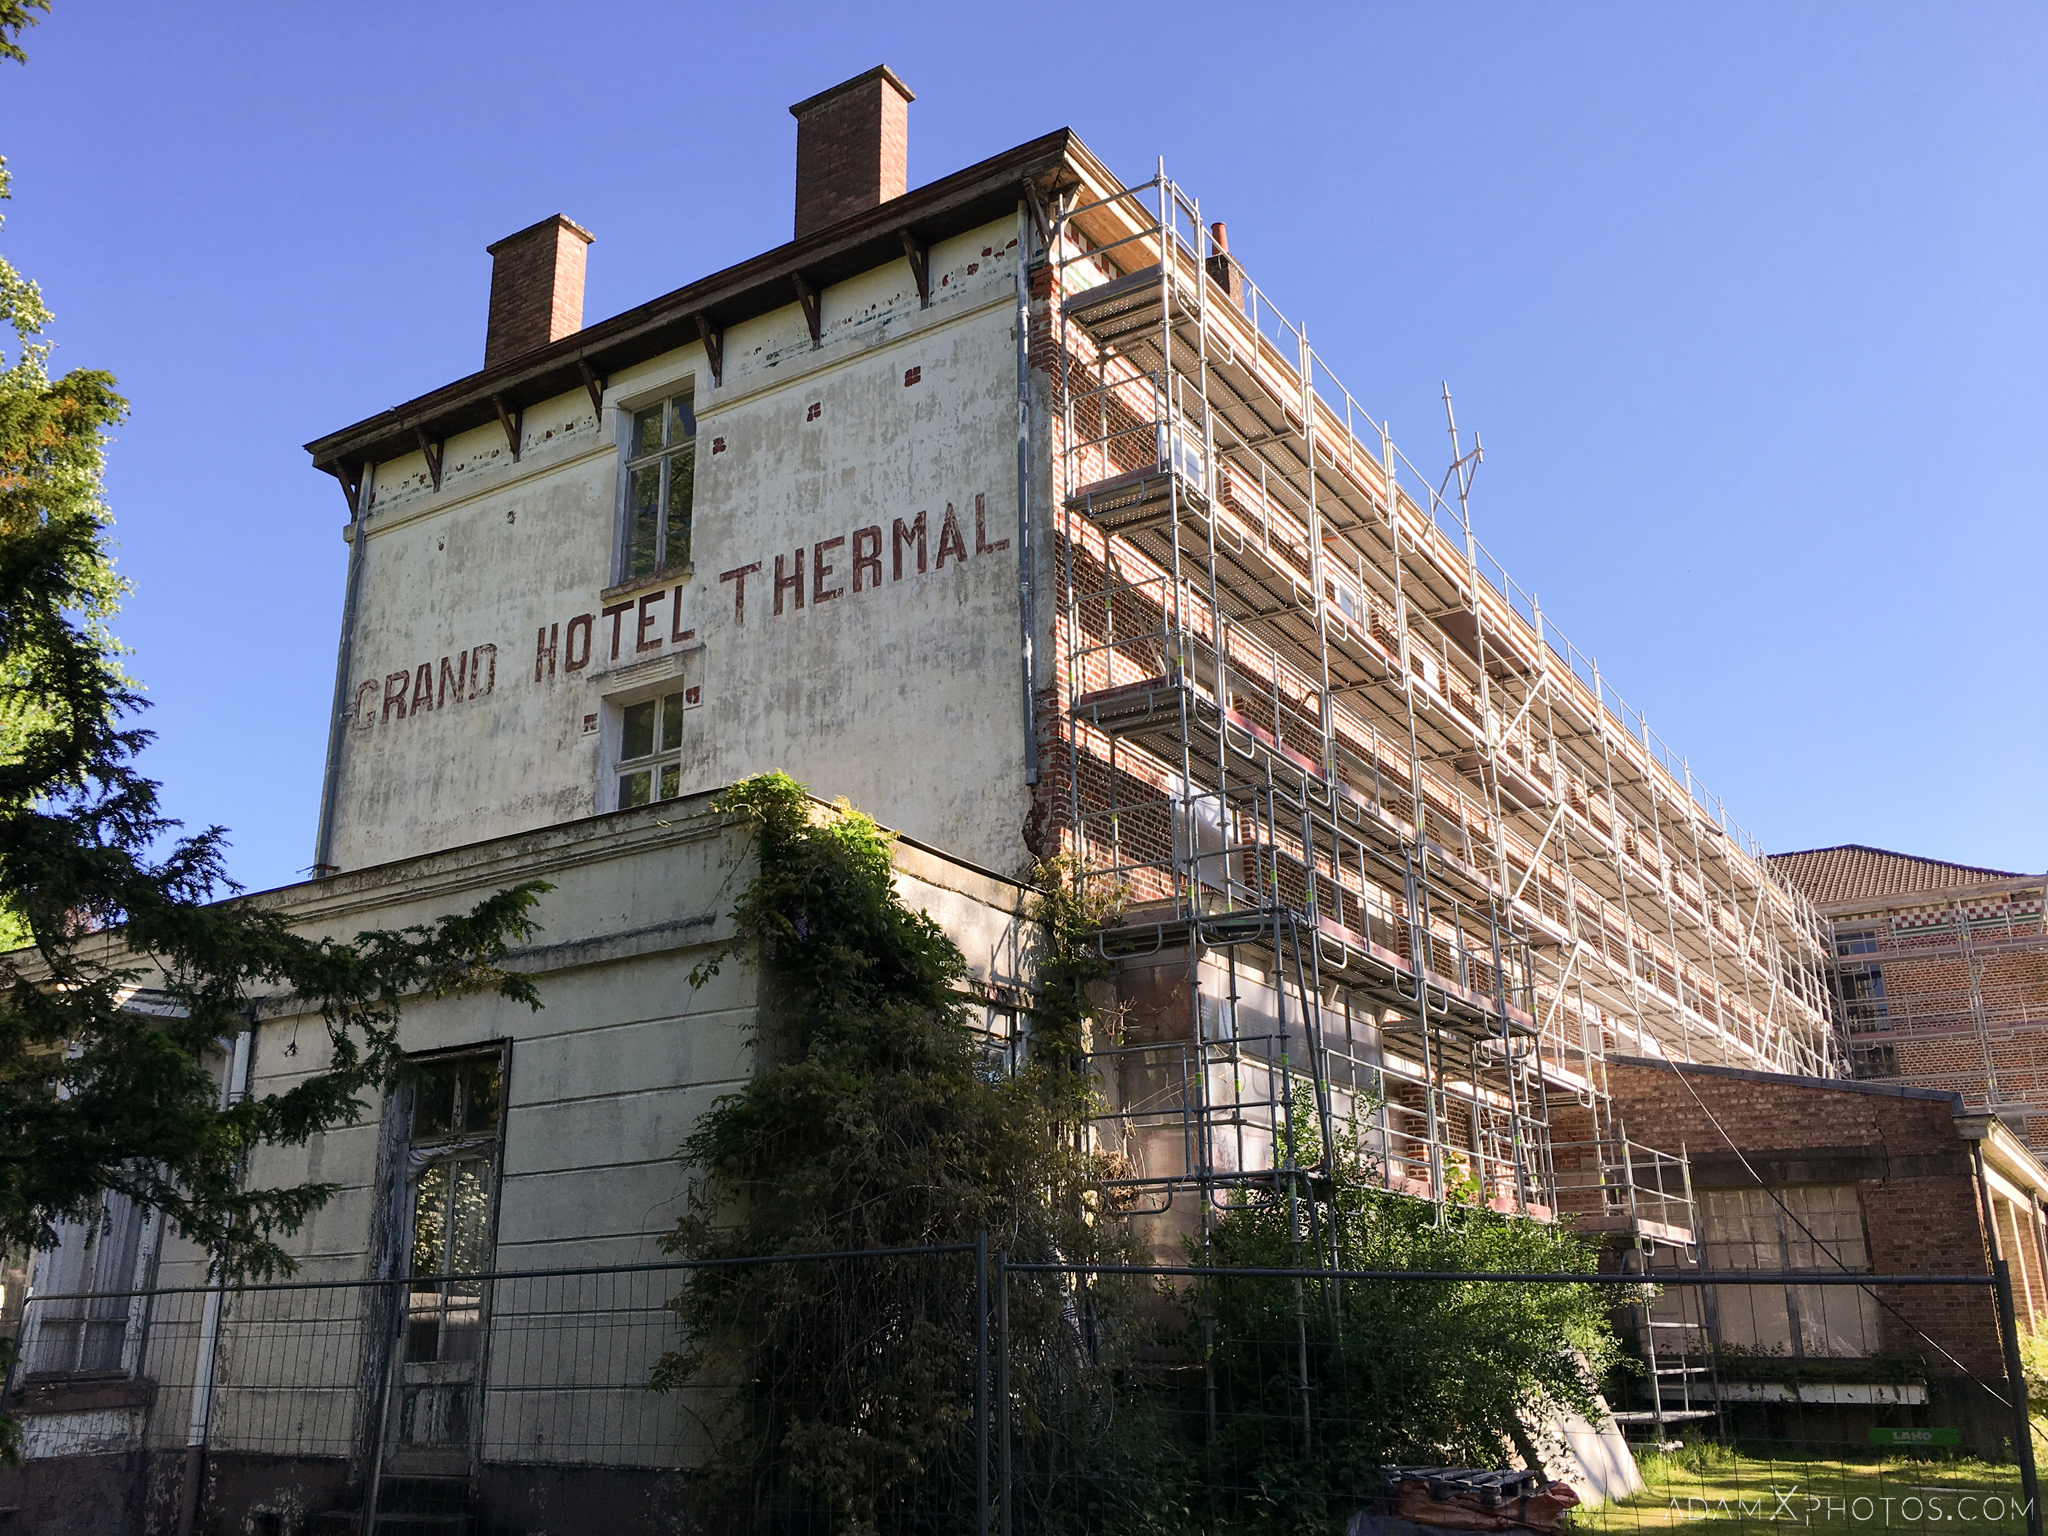 exterior external scaffolding grand hotel thermal Hotel Des Thermes Adam X Urban Exploration France Access 2017 Abandoned decay lost forgotten derelict location creepy haunting eerie